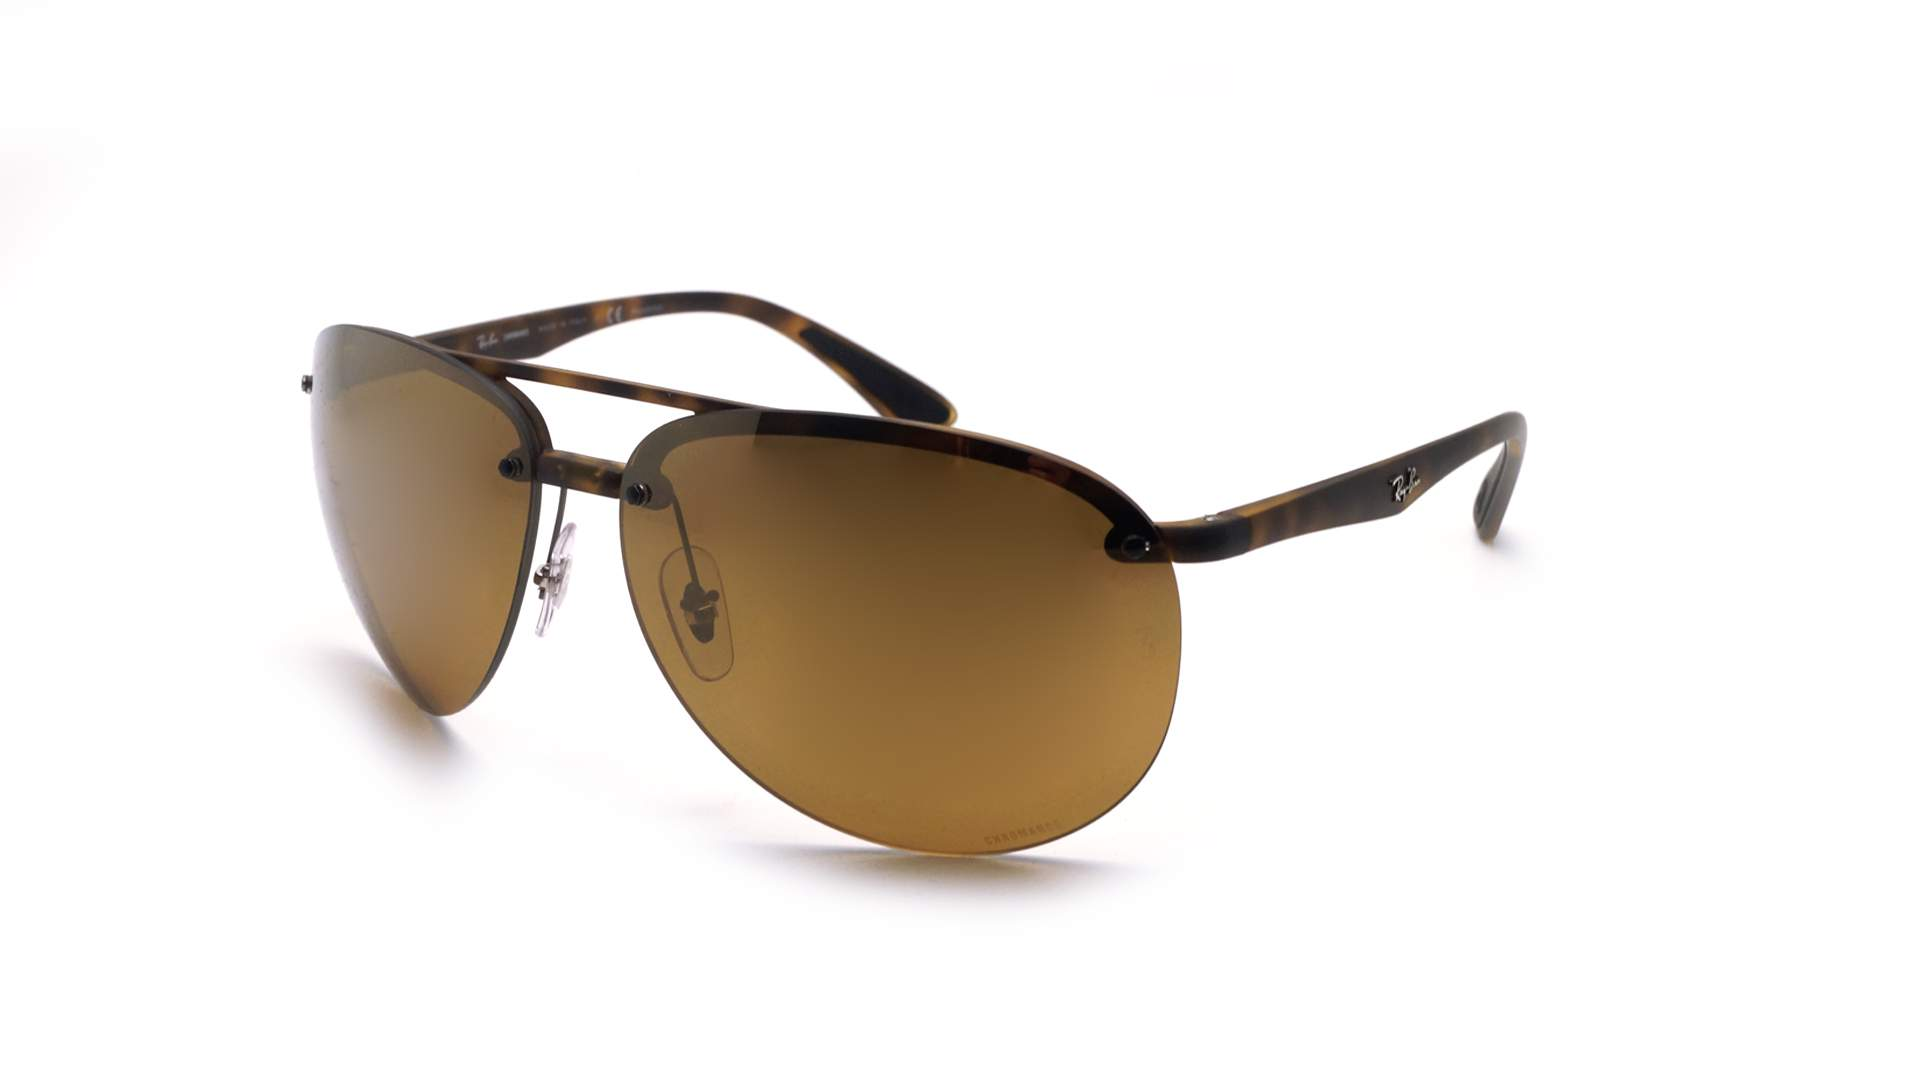 b58b6ede16e ... top quality sunglasses ray ban rb4293ch 894 a3 65 13 tortoise matte  chromance large polarized gradient